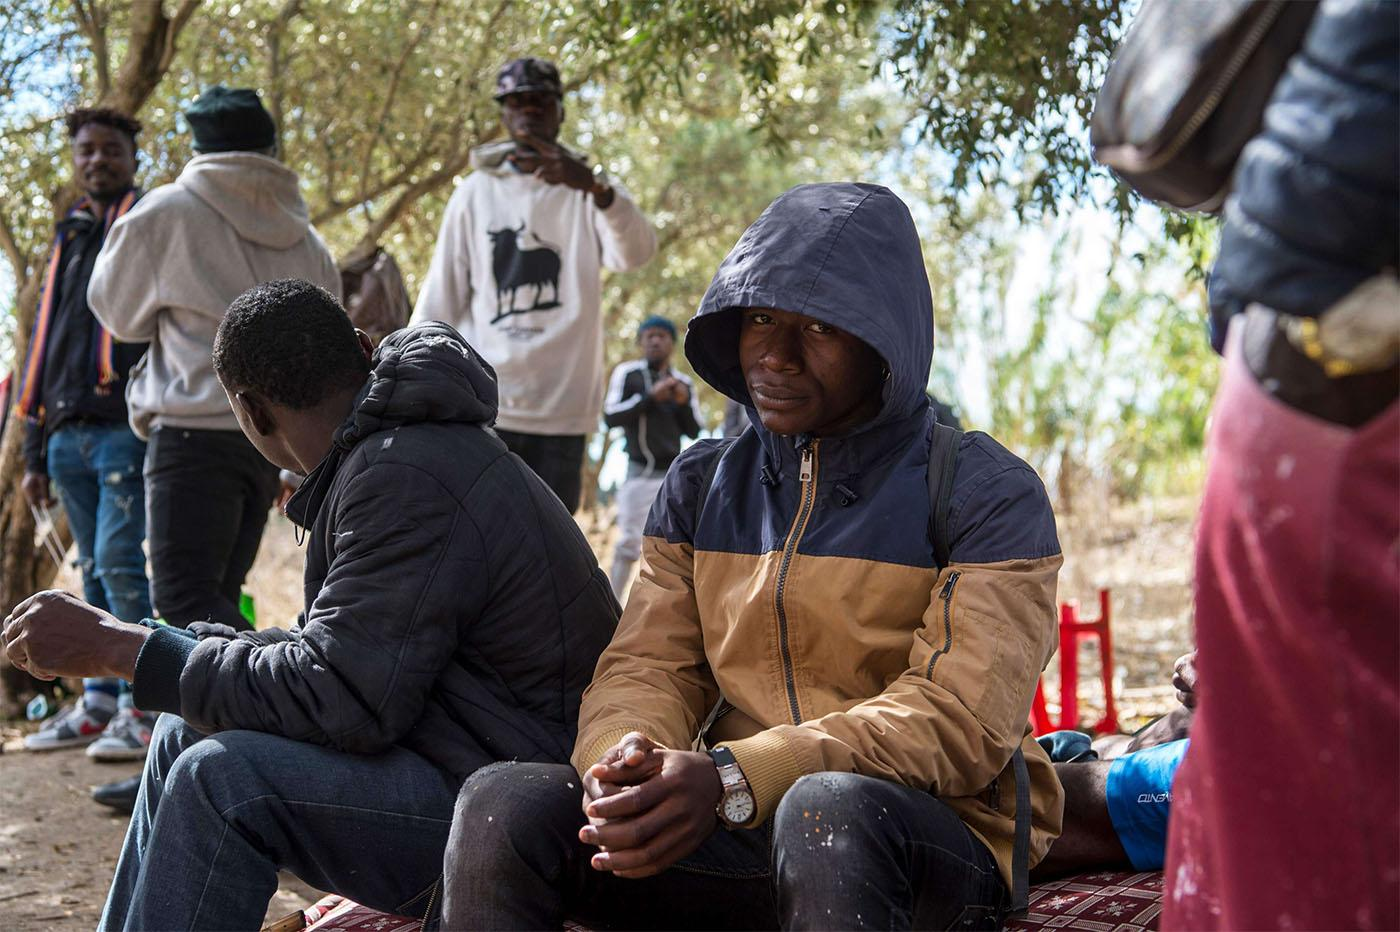 Migrants from Sub-Saharan Africa take shelter while hiding from the police in a forest in the district of Boukhalef of Tangiers